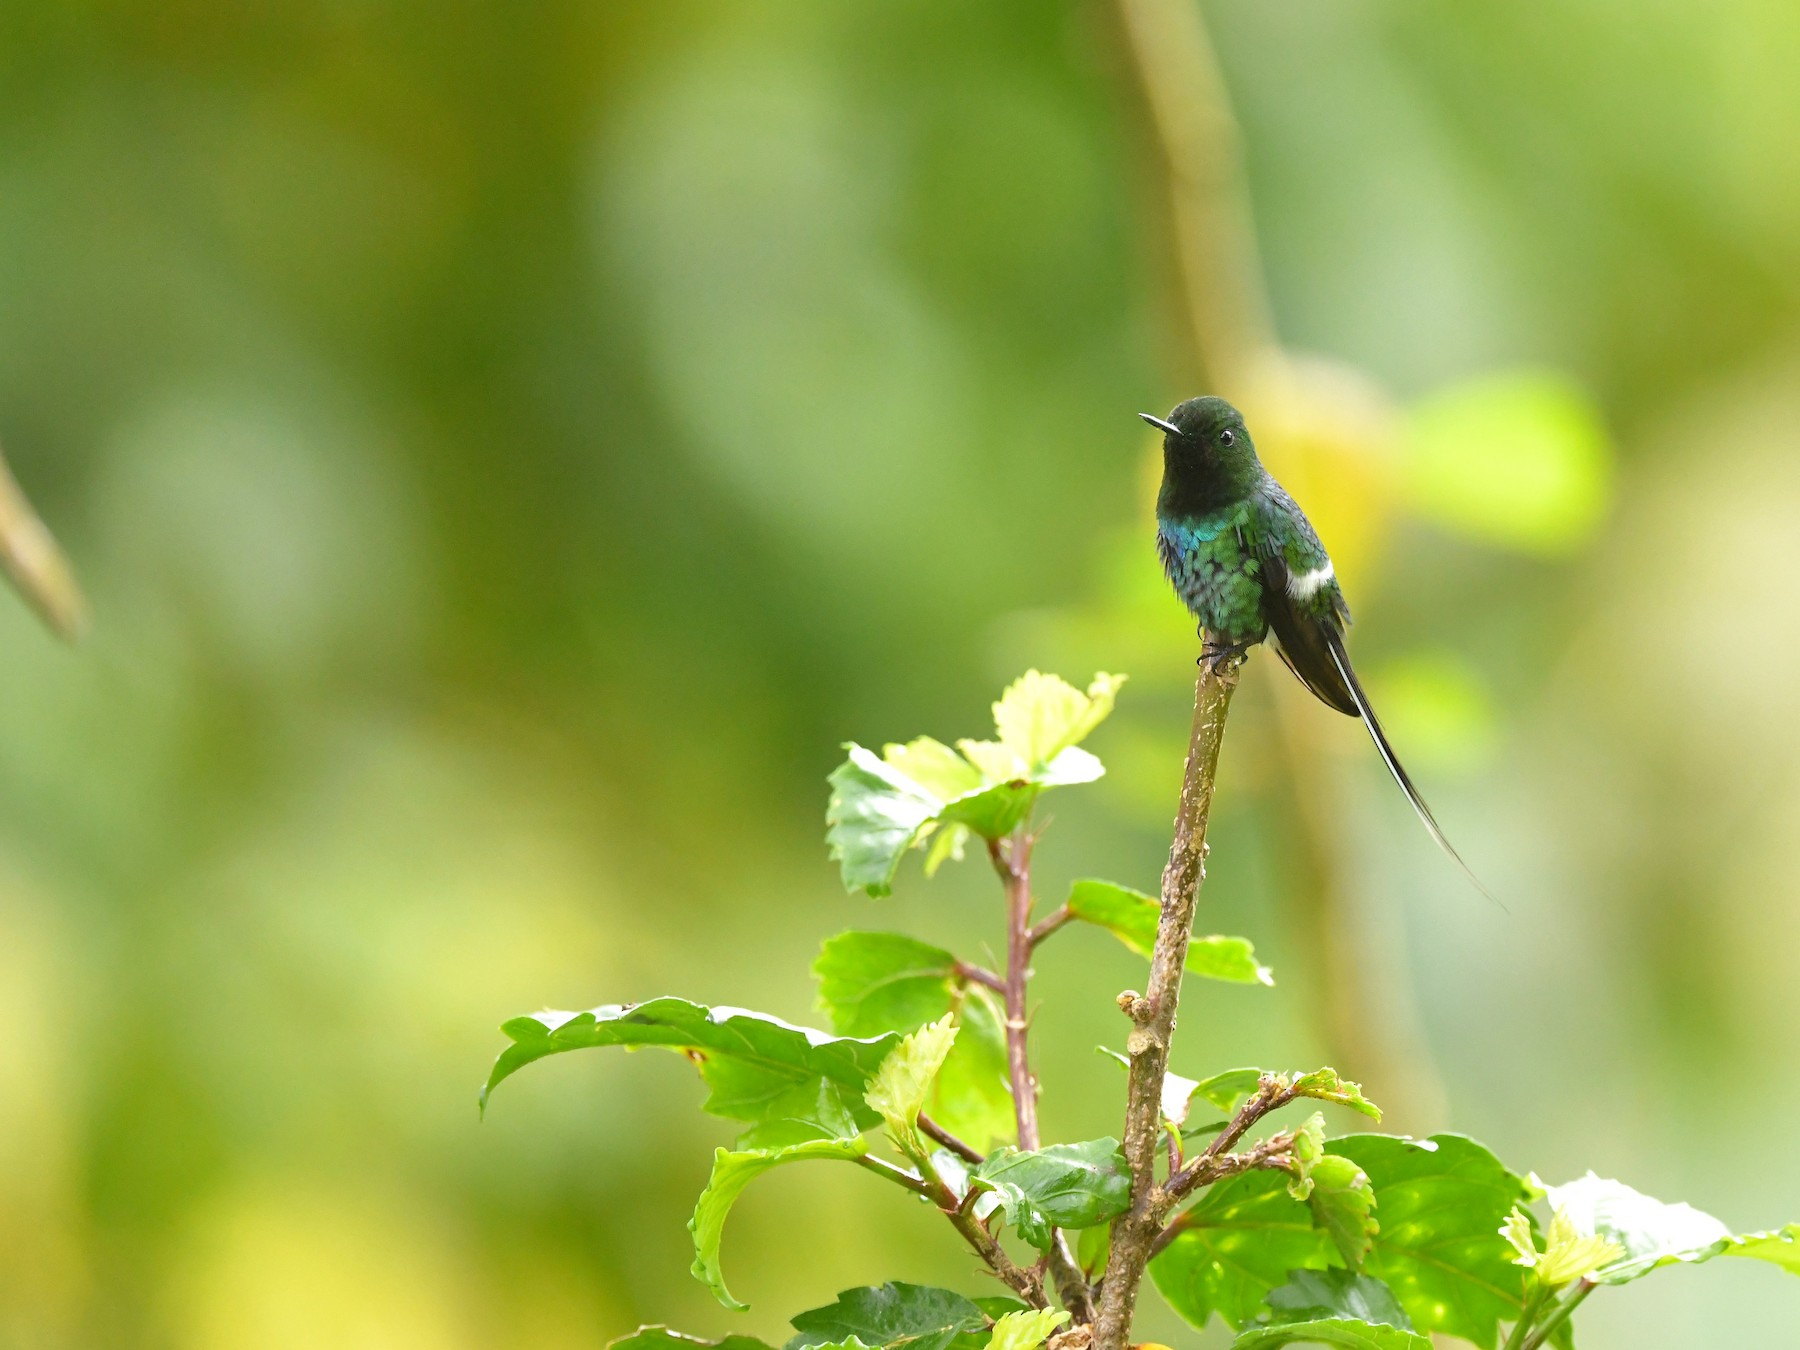 Green Thorntail - Ting-Wei (廷維) HUNG (洪)